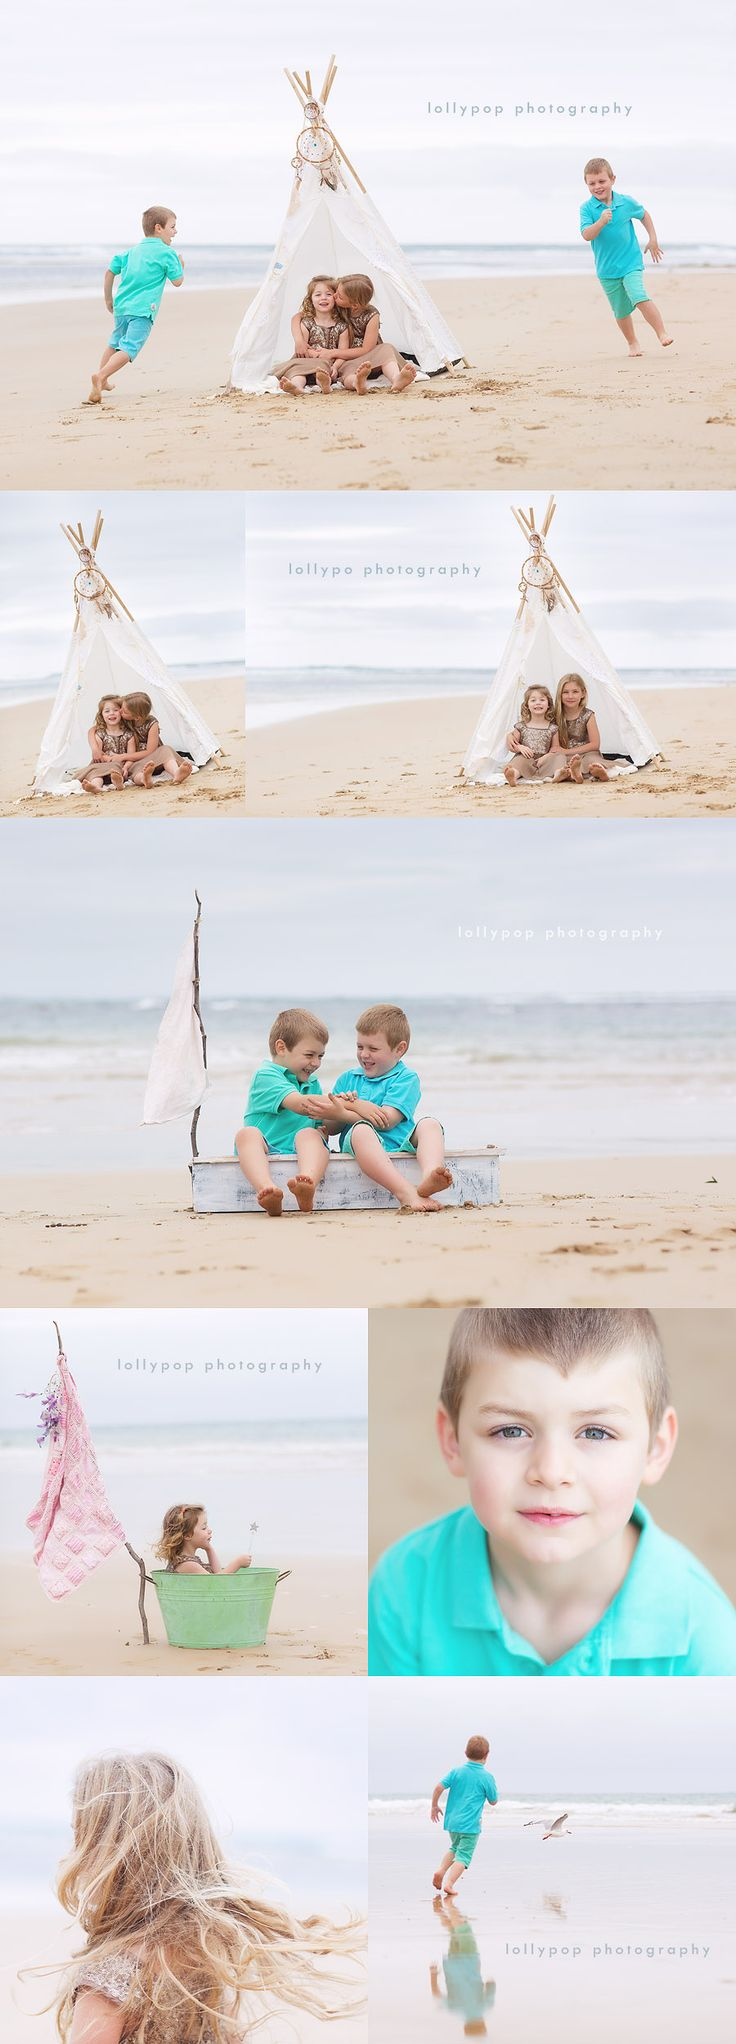 Lollypop photography - gorgeous natural light and beachy colours. Especially love the little girl in the tub!